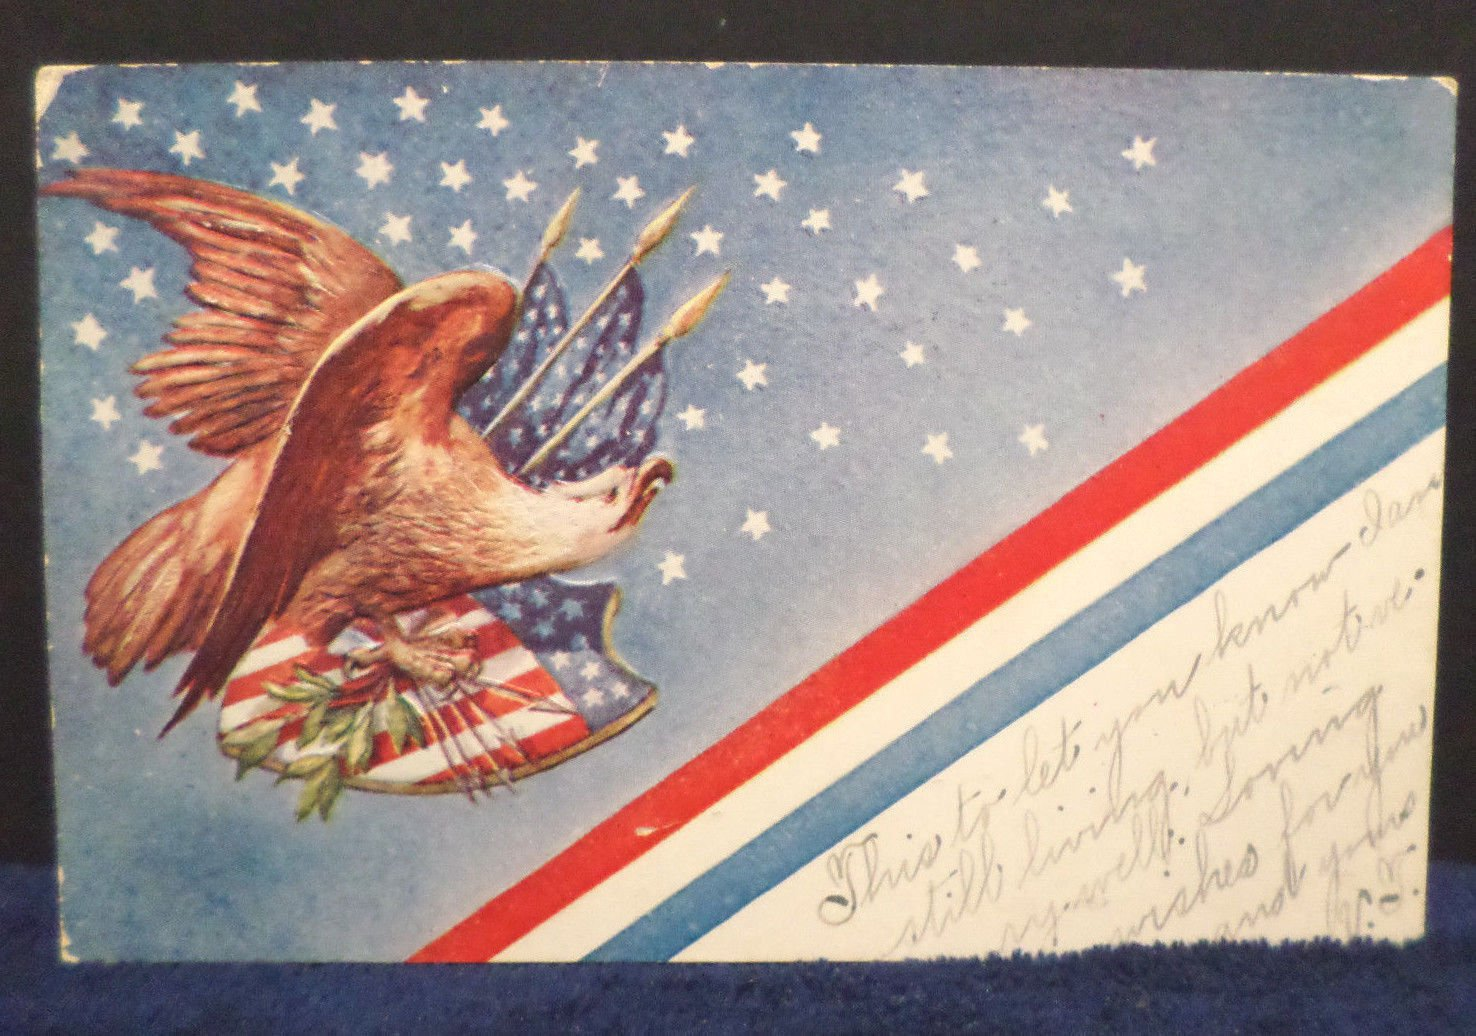 Antique Postcard Patriotic The American Eagle Posted Undivided